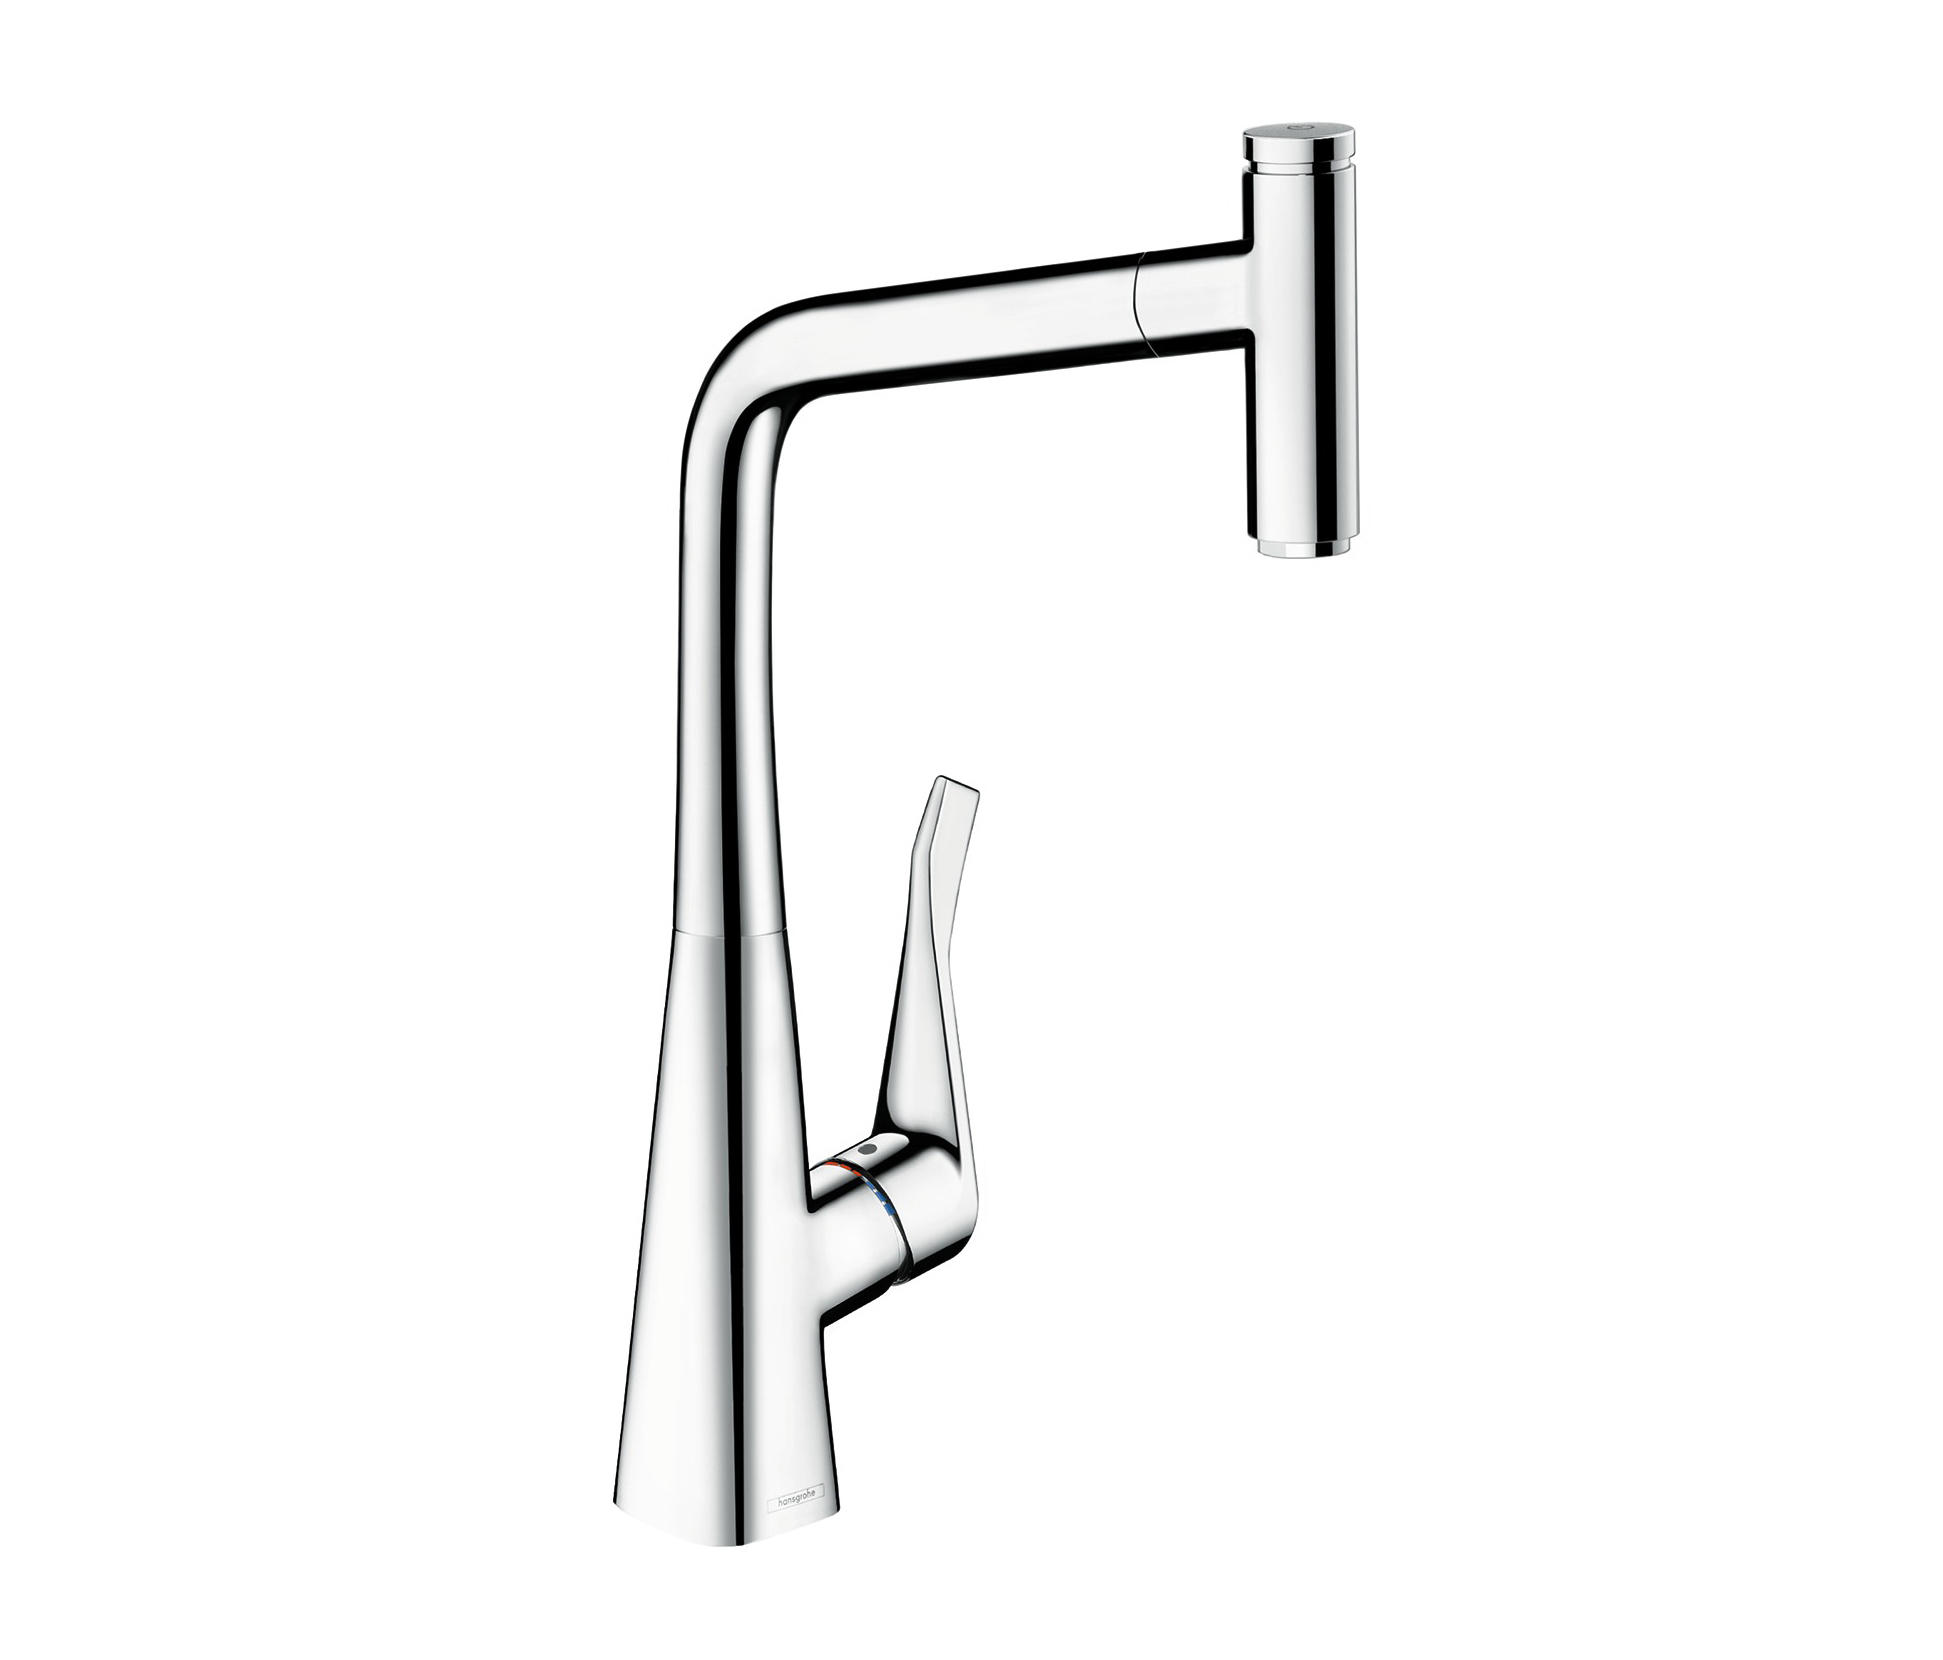 hansgrohe metris select 320 mitigeur de cuisine avec douchette extractible robinetterie de. Black Bedroom Furniture Sets. Home Design Ideas